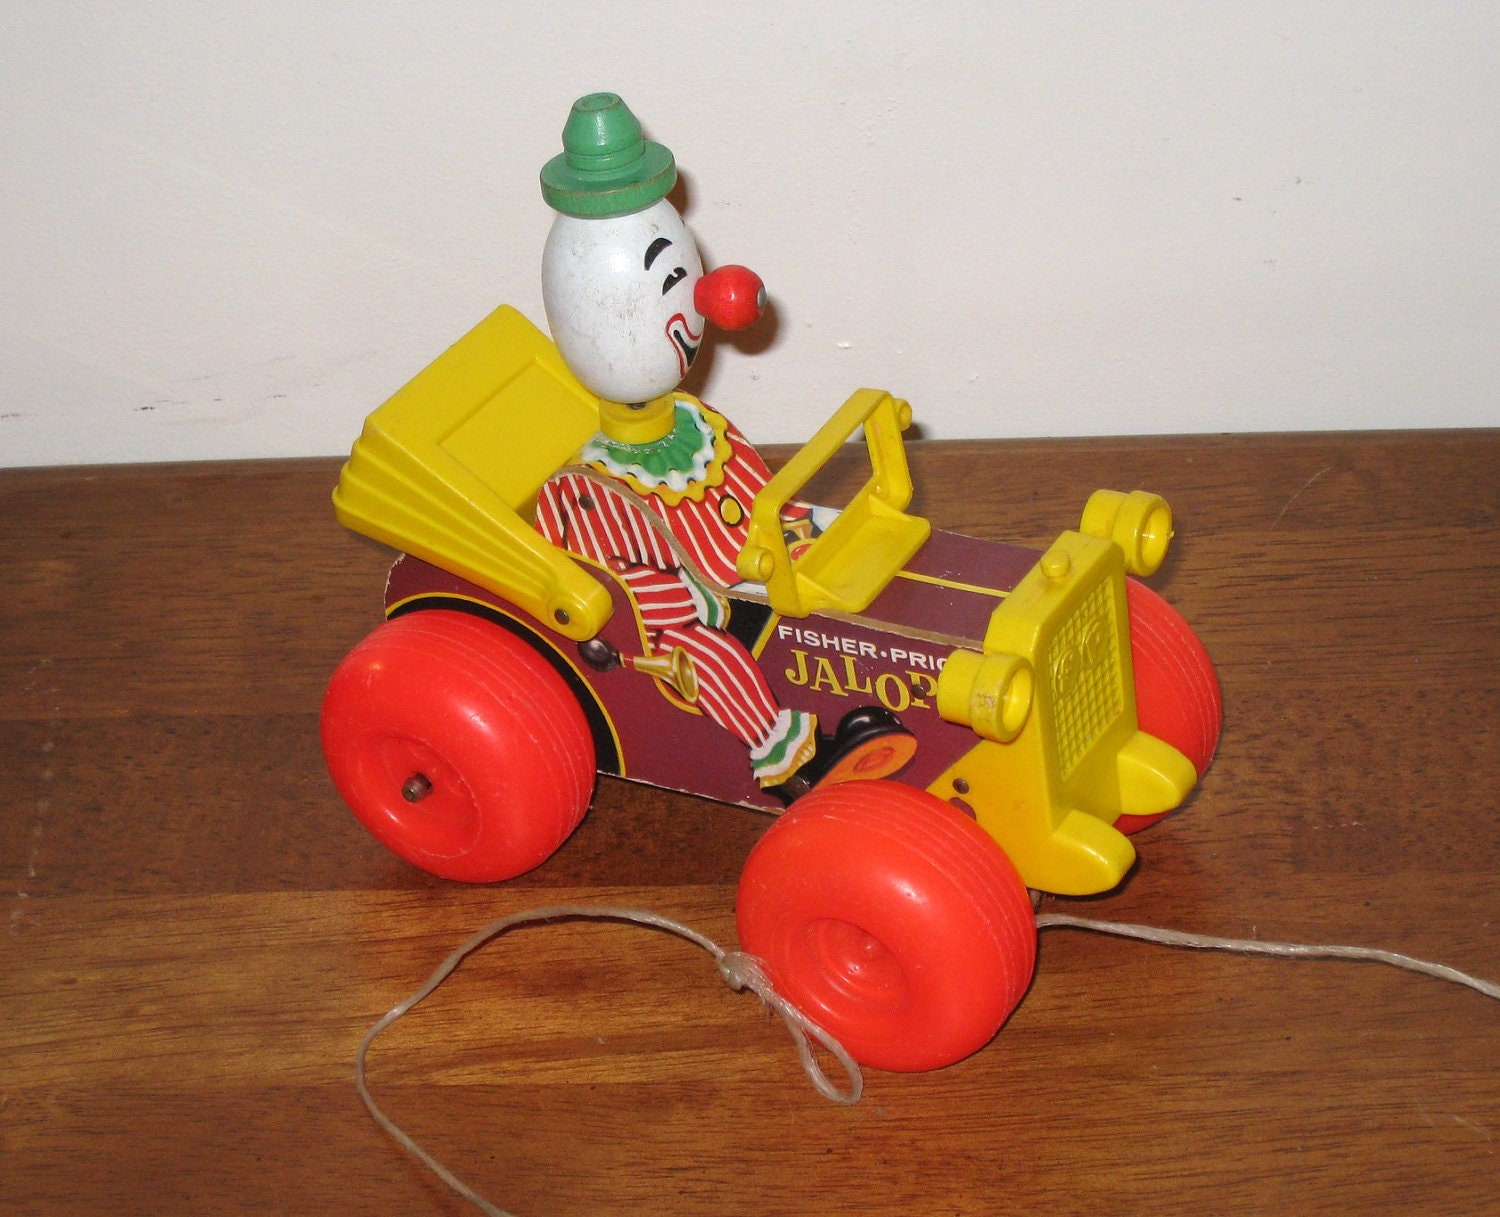 1960s jalopy fisher price pull toy with clown for Clown fish price